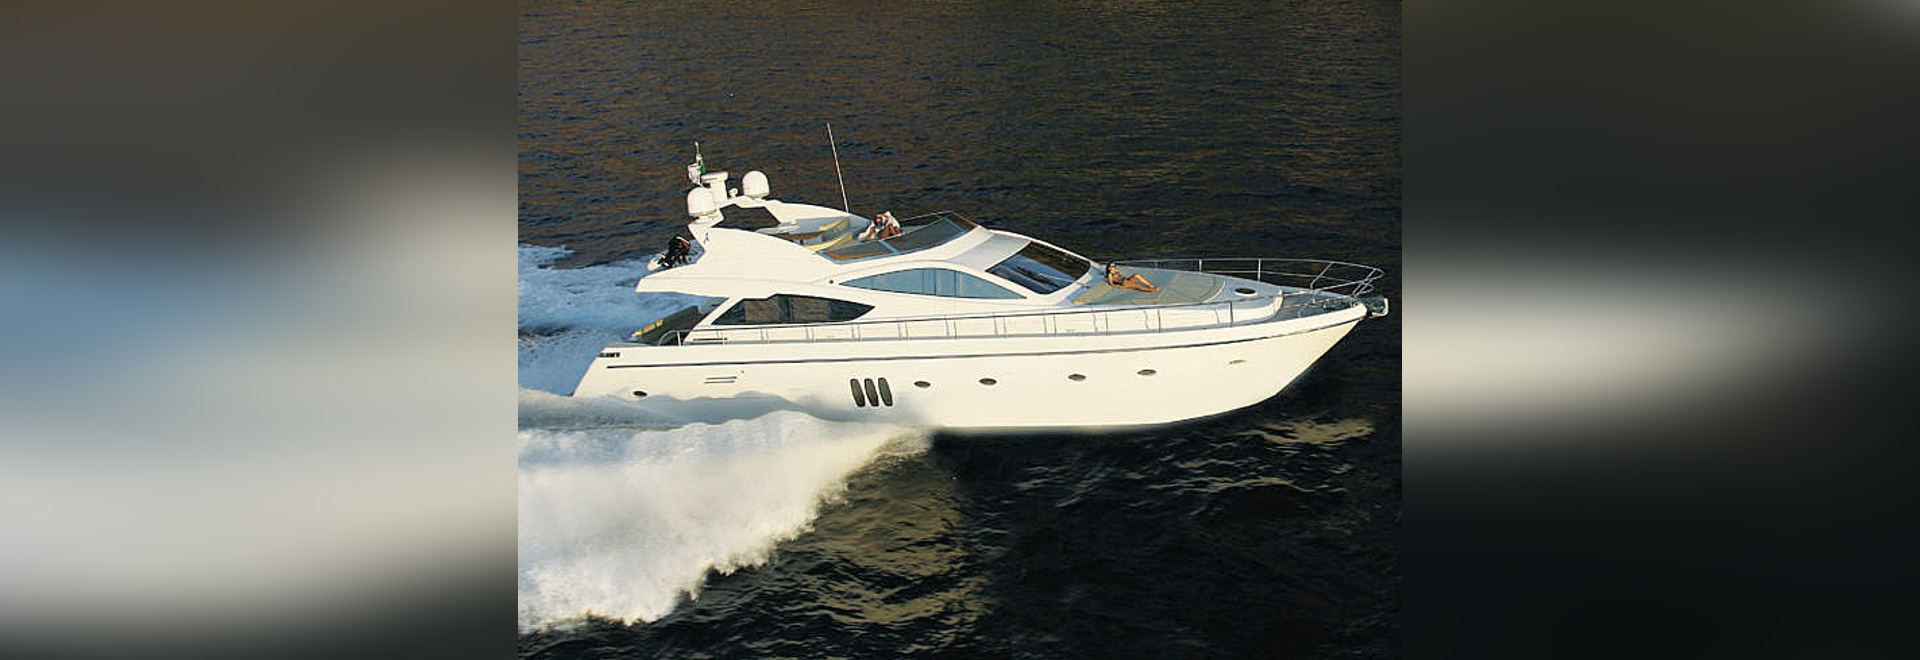 YACHTING CHANGECOLOR TO PERSONALIZE YOUR BOAT